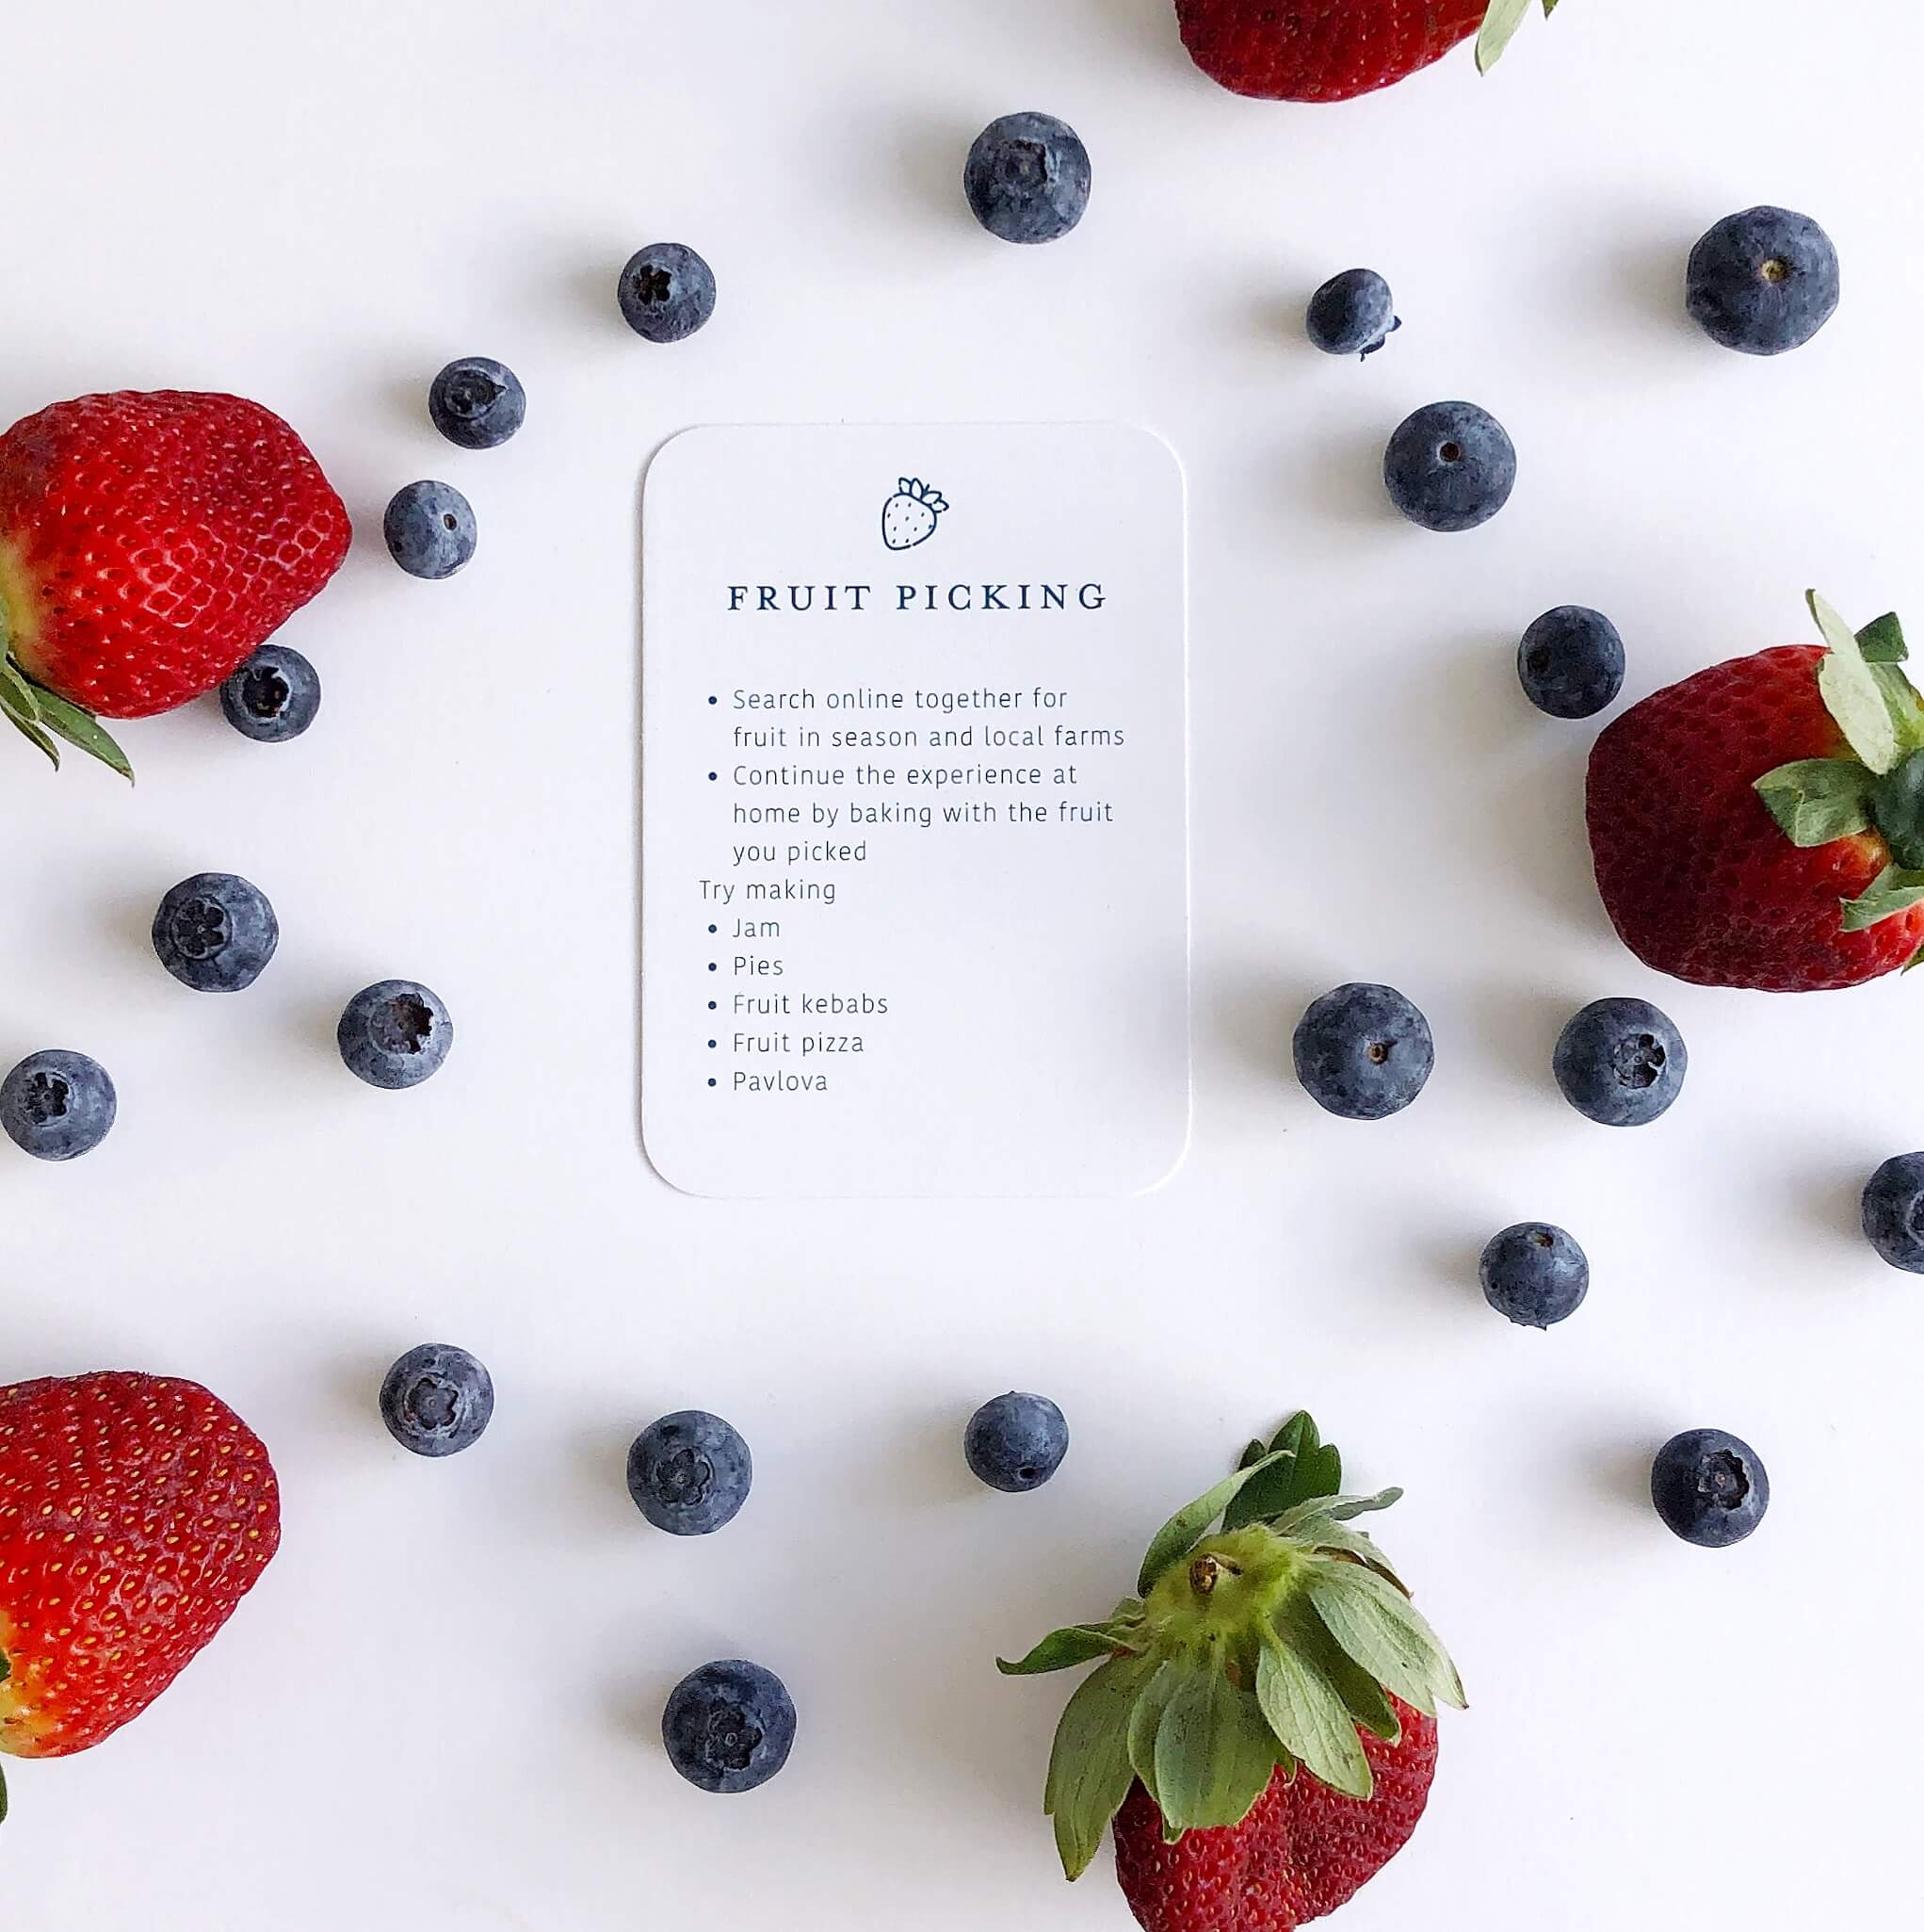 Memory Makers Family Edition - Fruit Picking Card surrounded by strawberries and blueberries